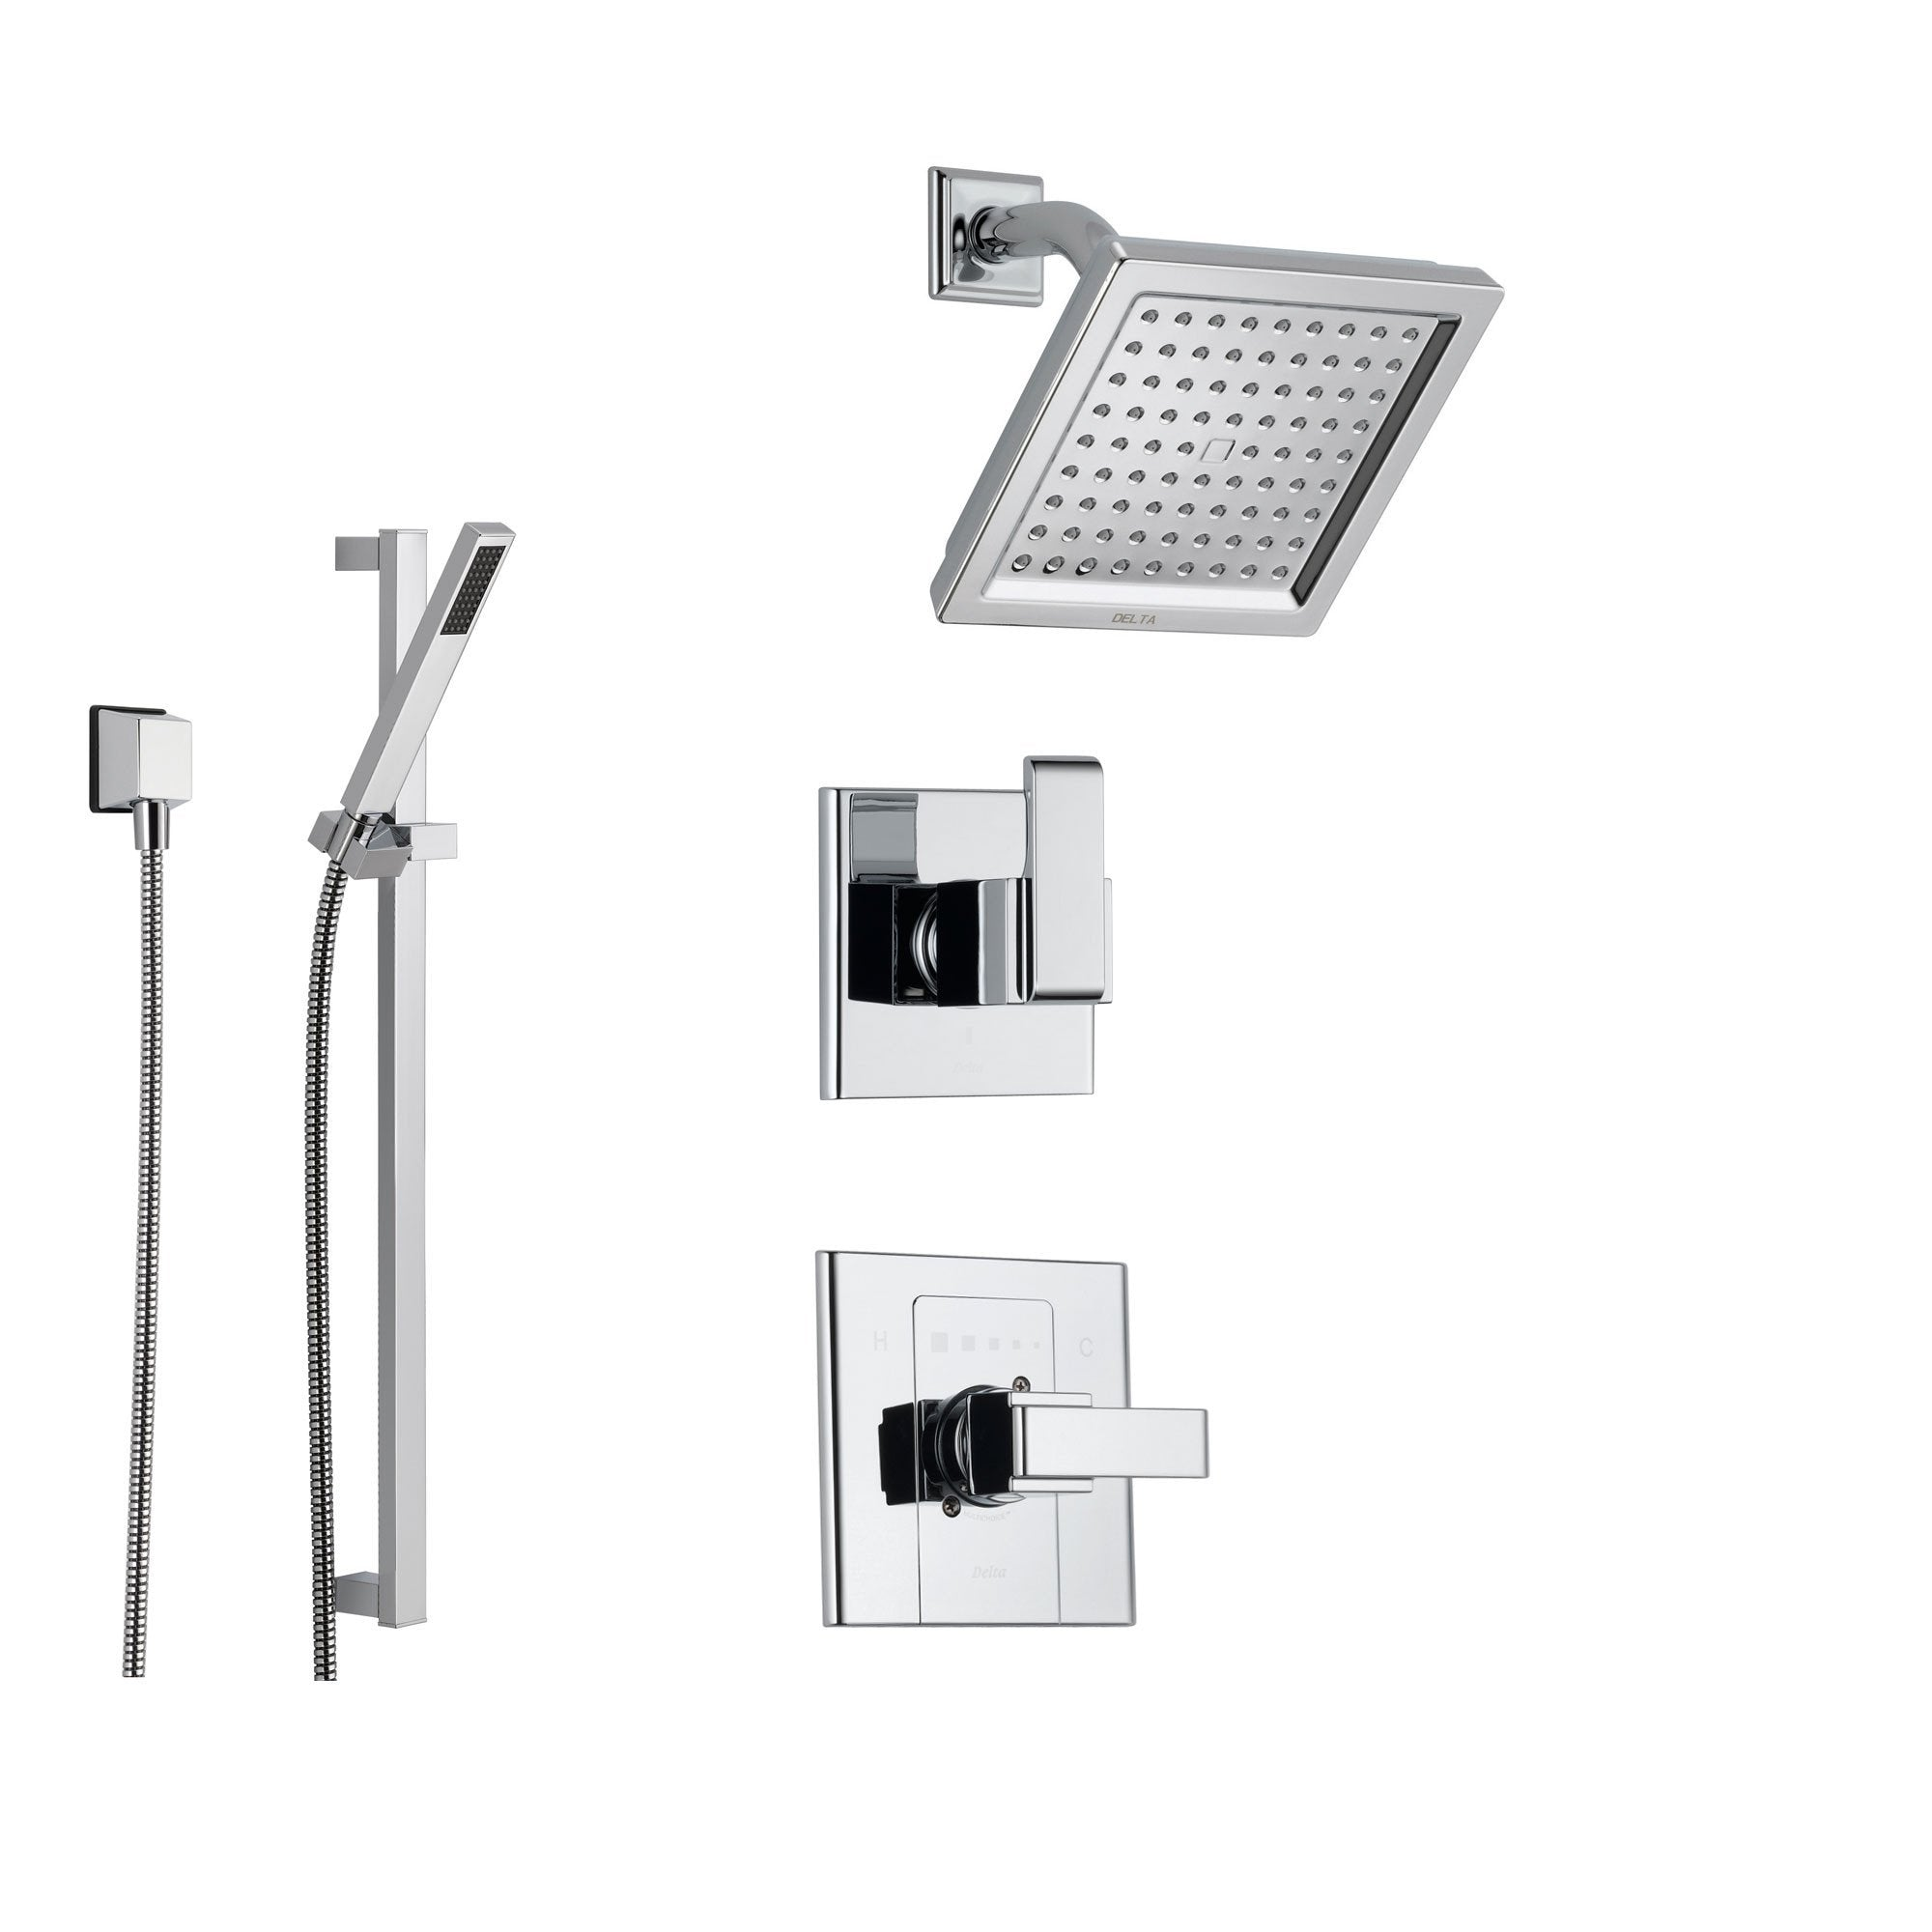 Shower Setup For Clawfoot Tub Strom Deck Mount Thermostatic